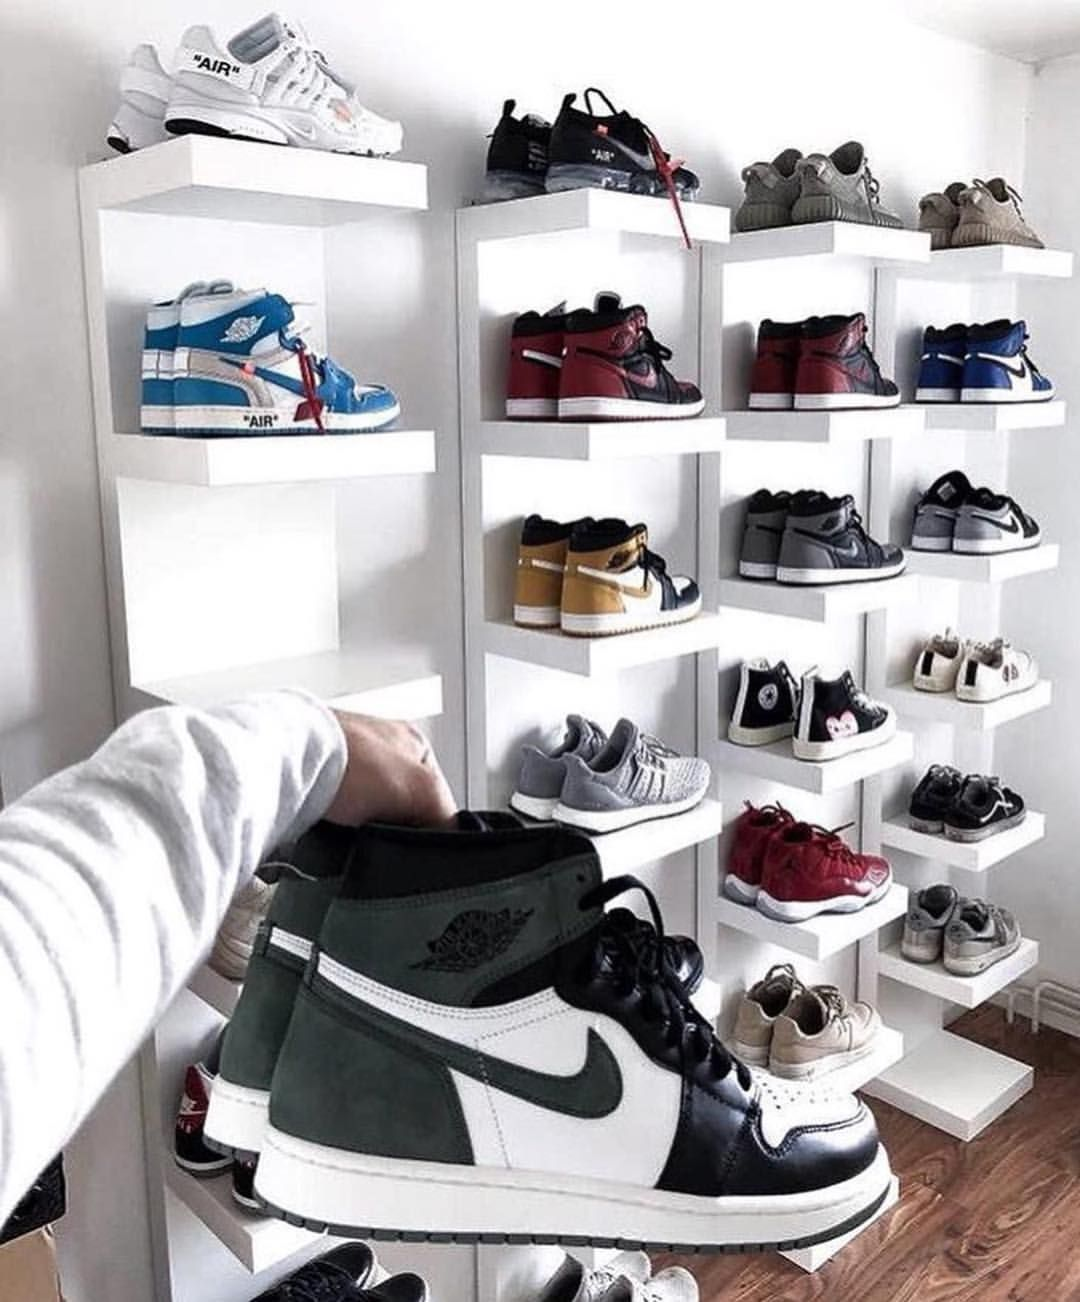 Behind The Scenes By hypedarchive in 2020 | Sneaker storage